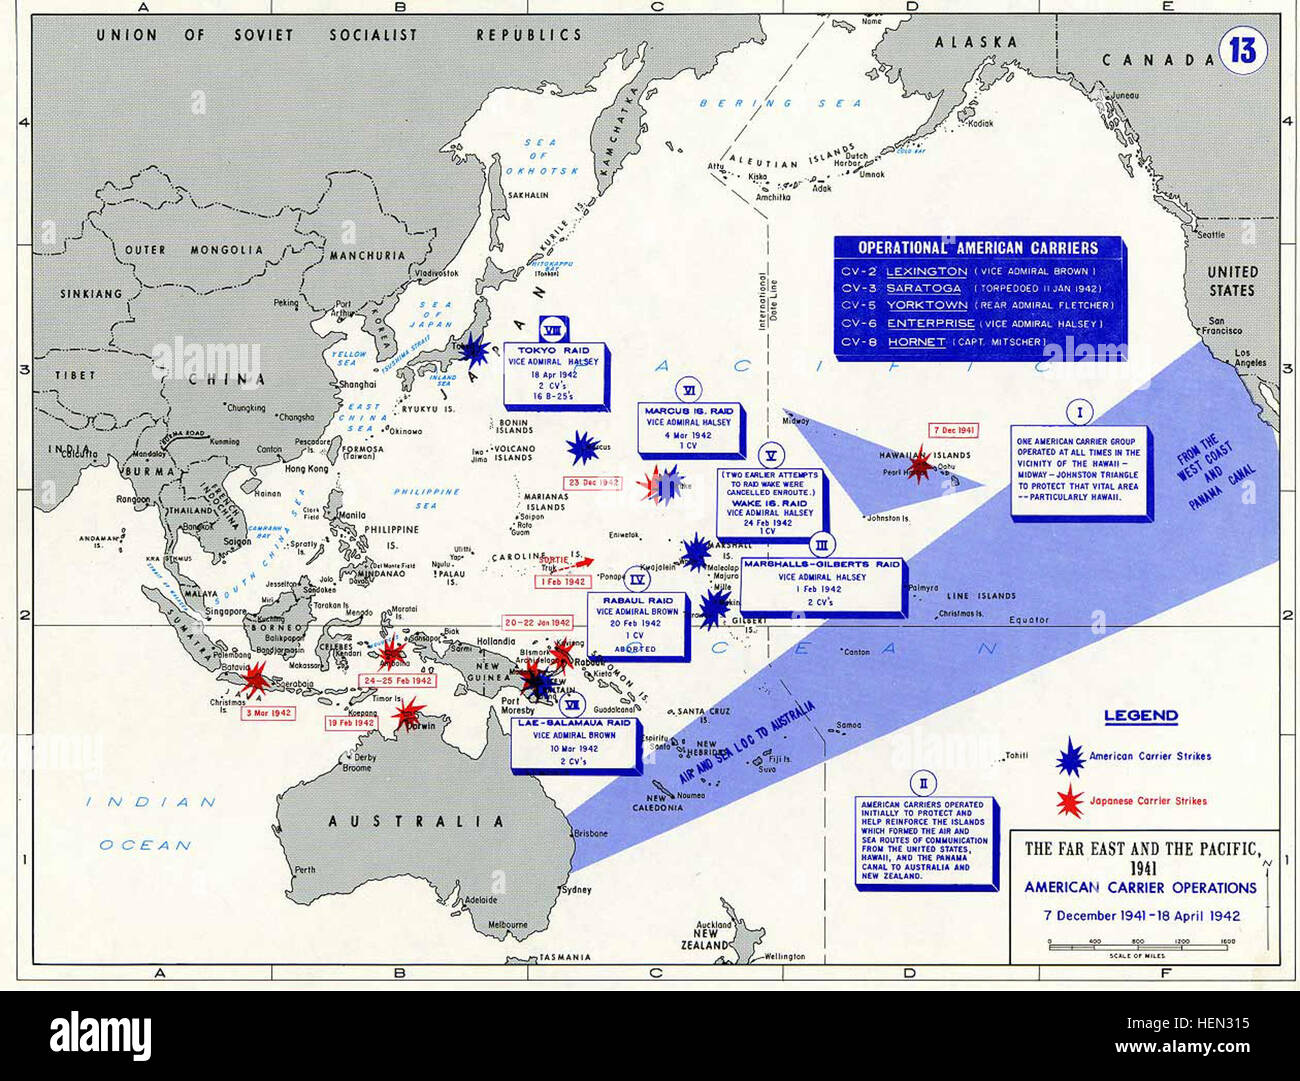 Pacific War - American Carrier OP 1941-42 - Map Stock Photo ...